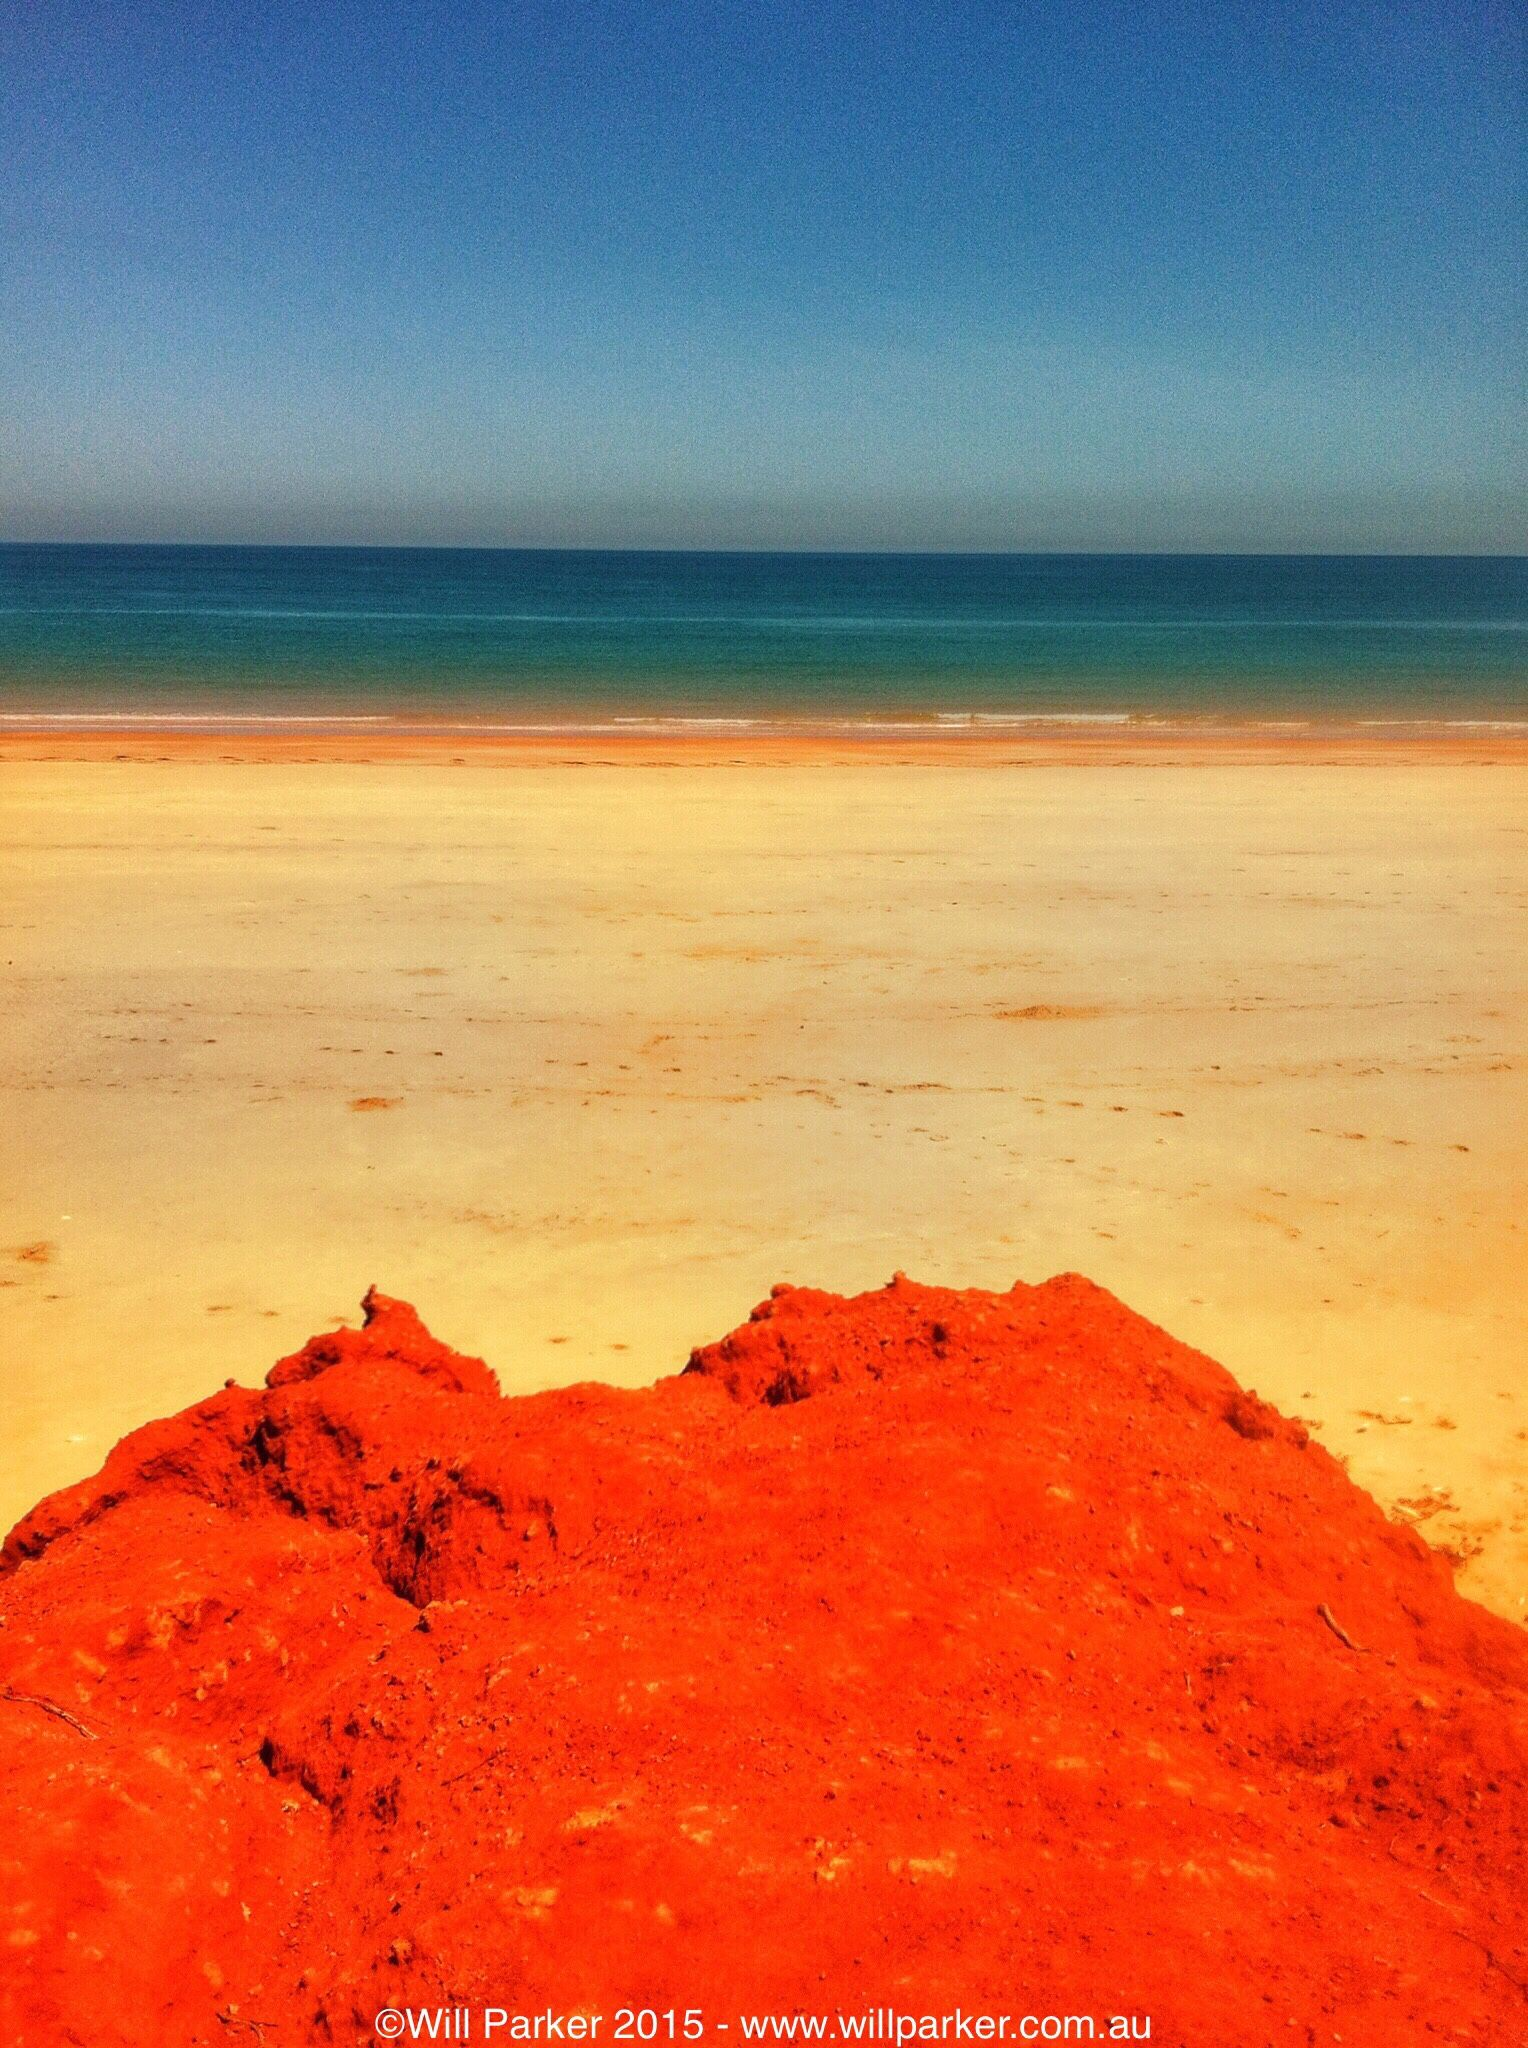 Where The Desert Meets Sea Red Pindan Sand Gives Way To Beach Then Ocean In Cleanest Of Lines Broome Western Australia